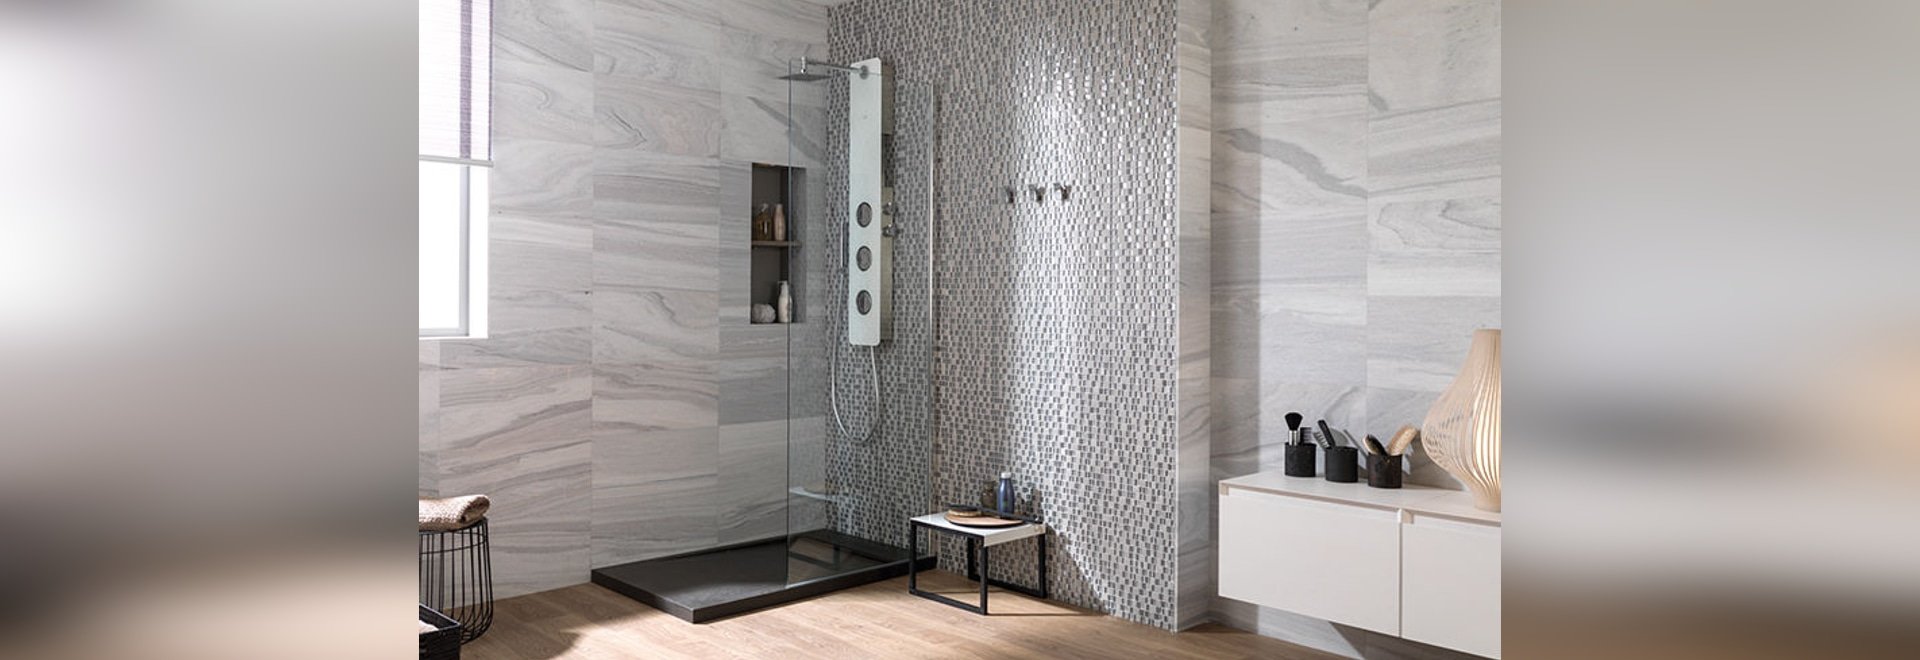 NEW: indoor tile by L'ANTIC  COLONIAL by Porcelanosa